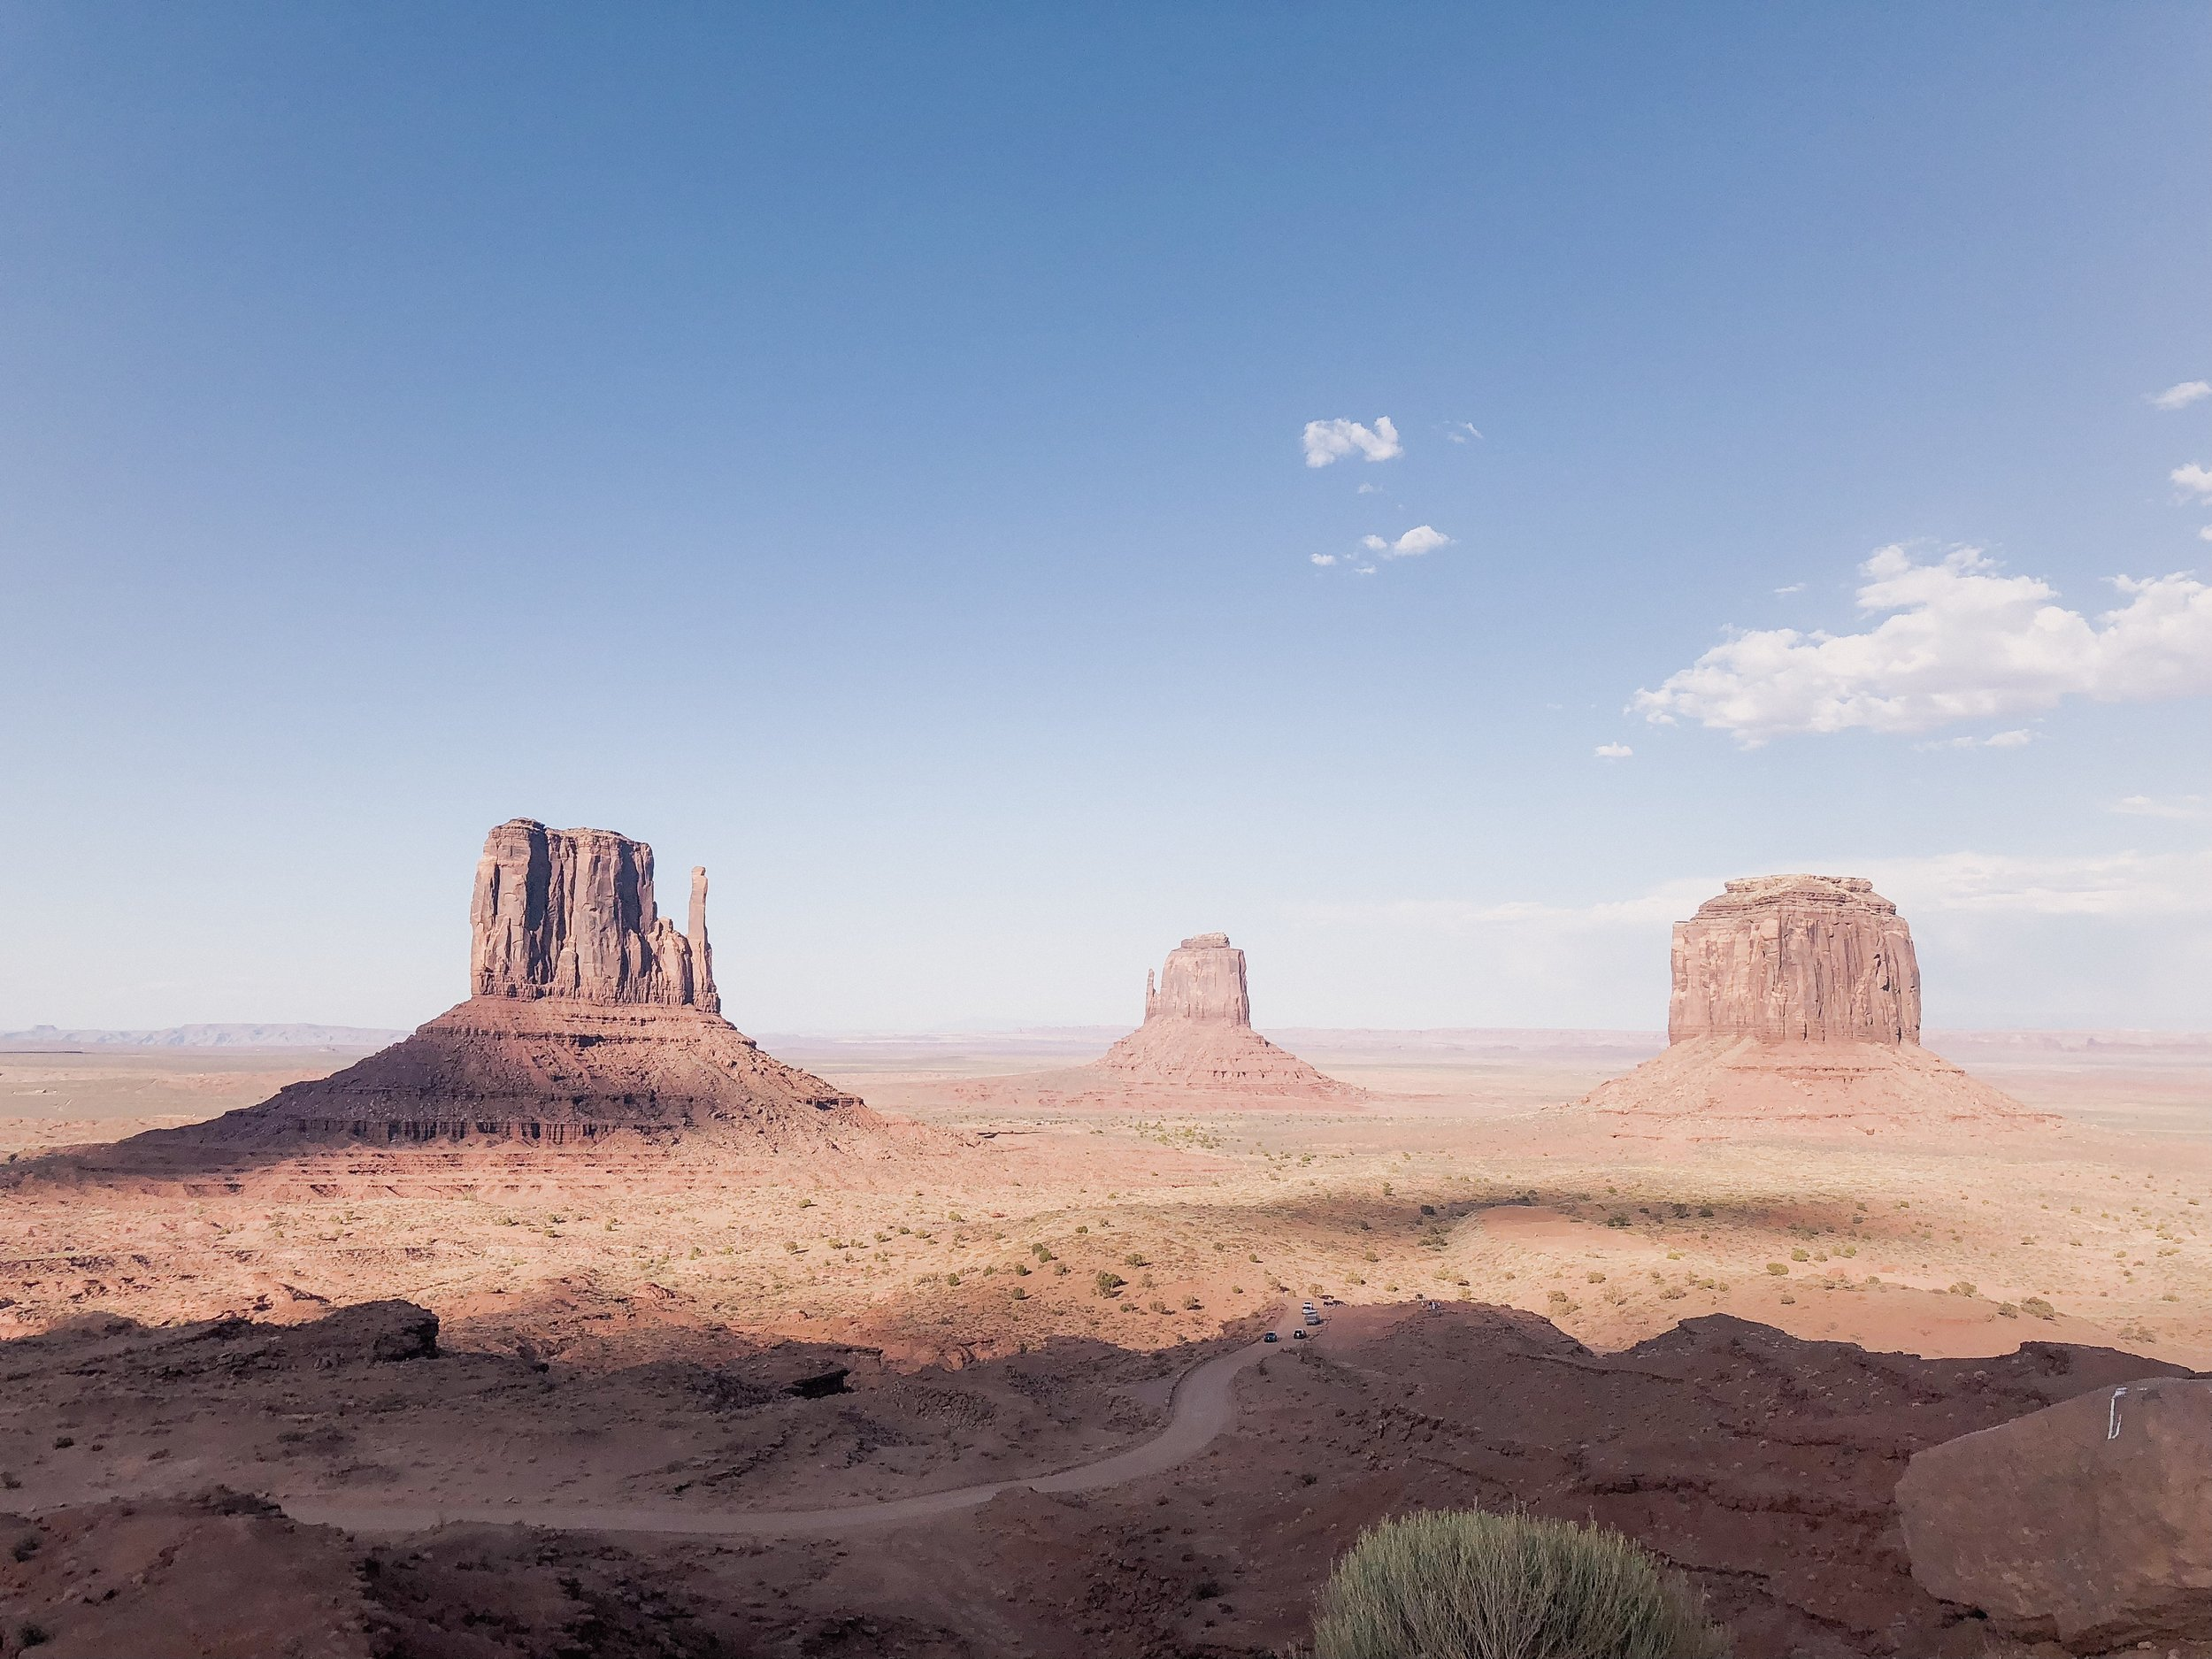 Gina Regala, San Jose, CA | Location: Monument Valley, UT (Shot on iPhone X)  Instagram